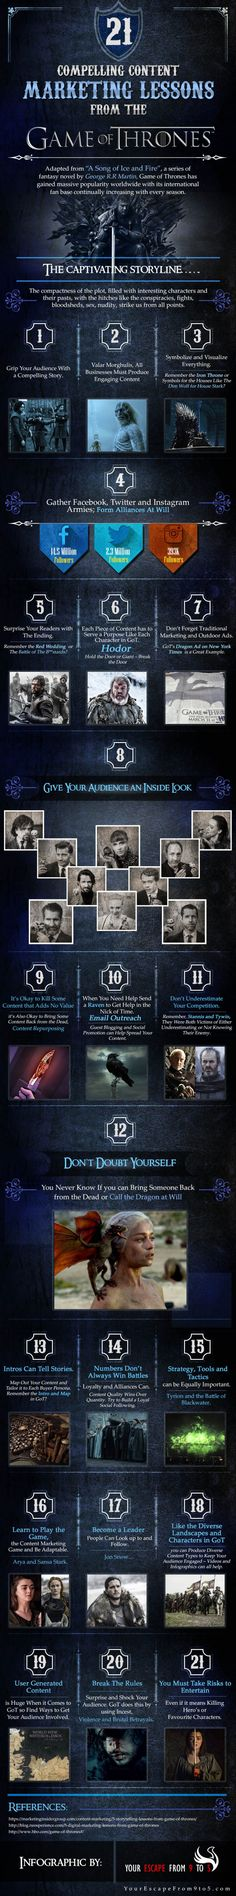 21 Compelling Content Marketing Lessons From The Game Of Thrones #Infographic